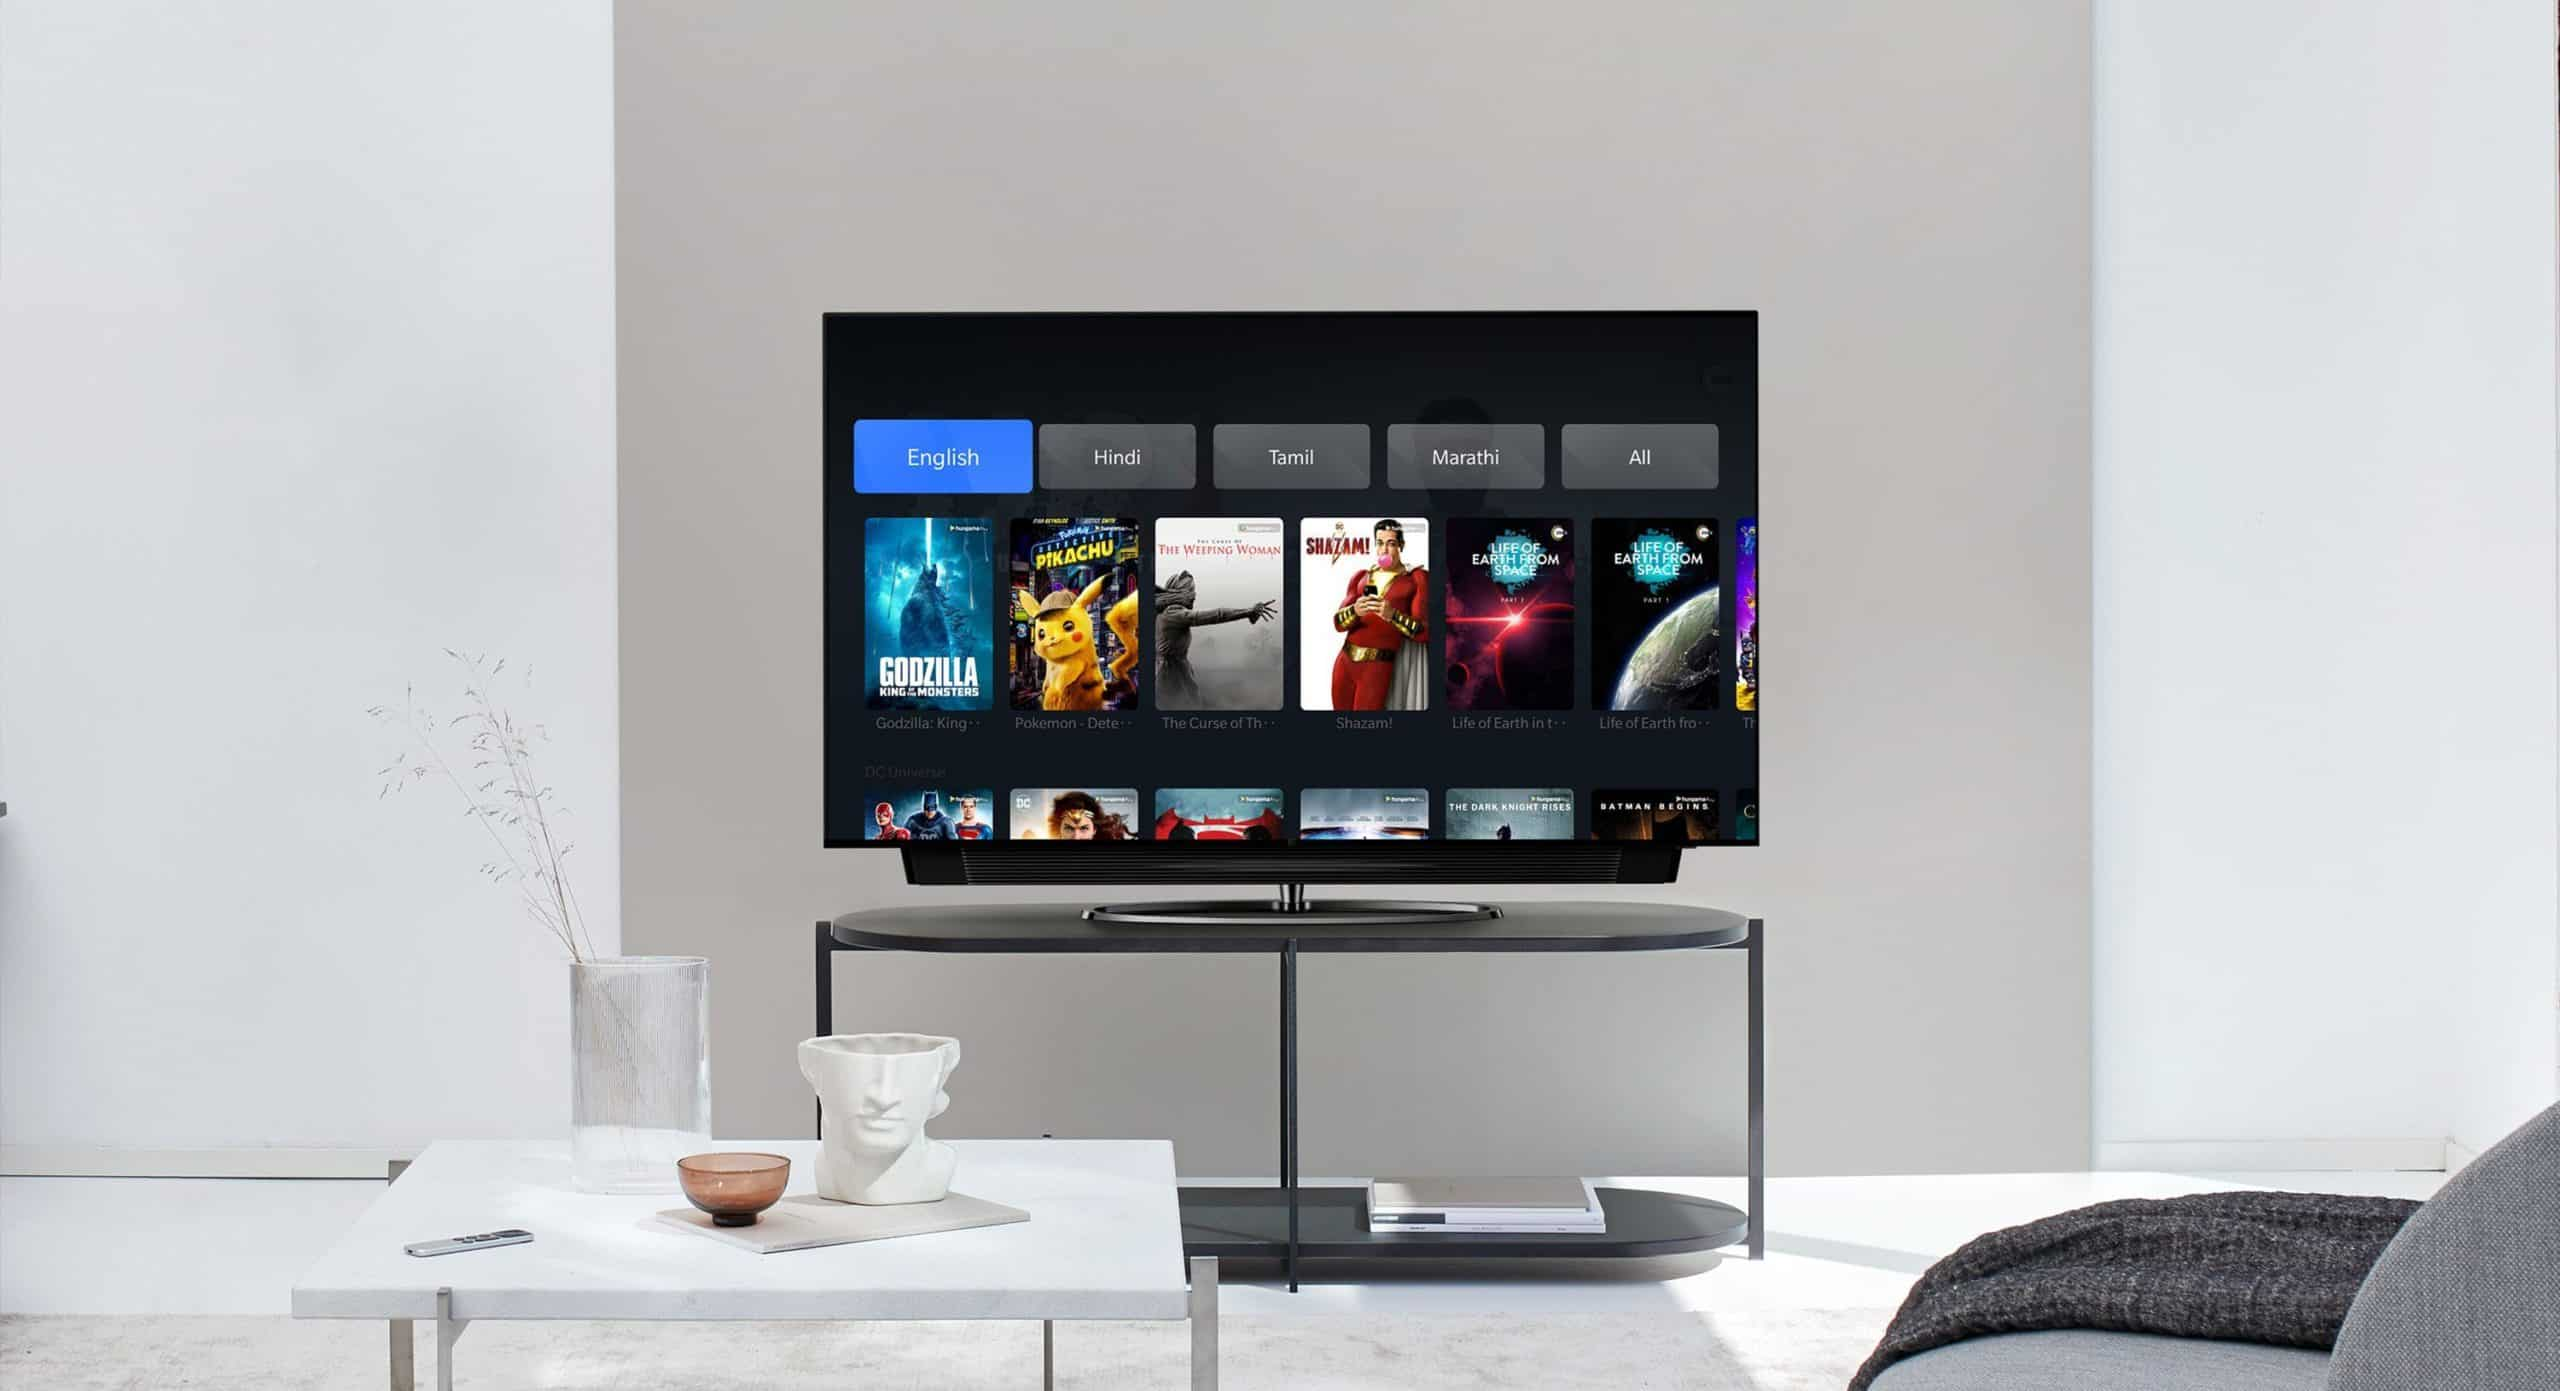 OnePlus Is Planning To Bring Its Android TVs To Europe